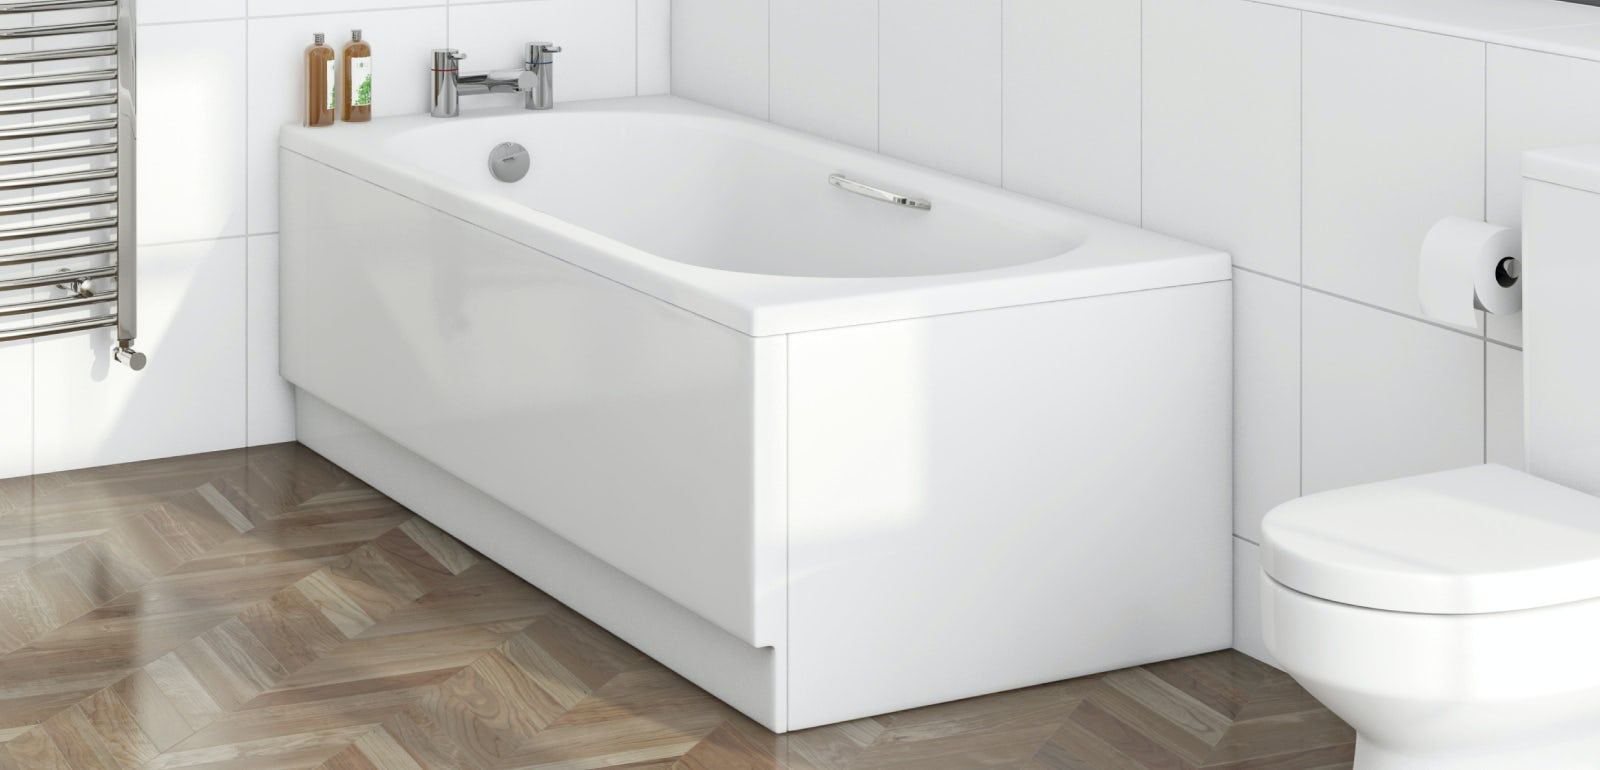 What is a standard bath size